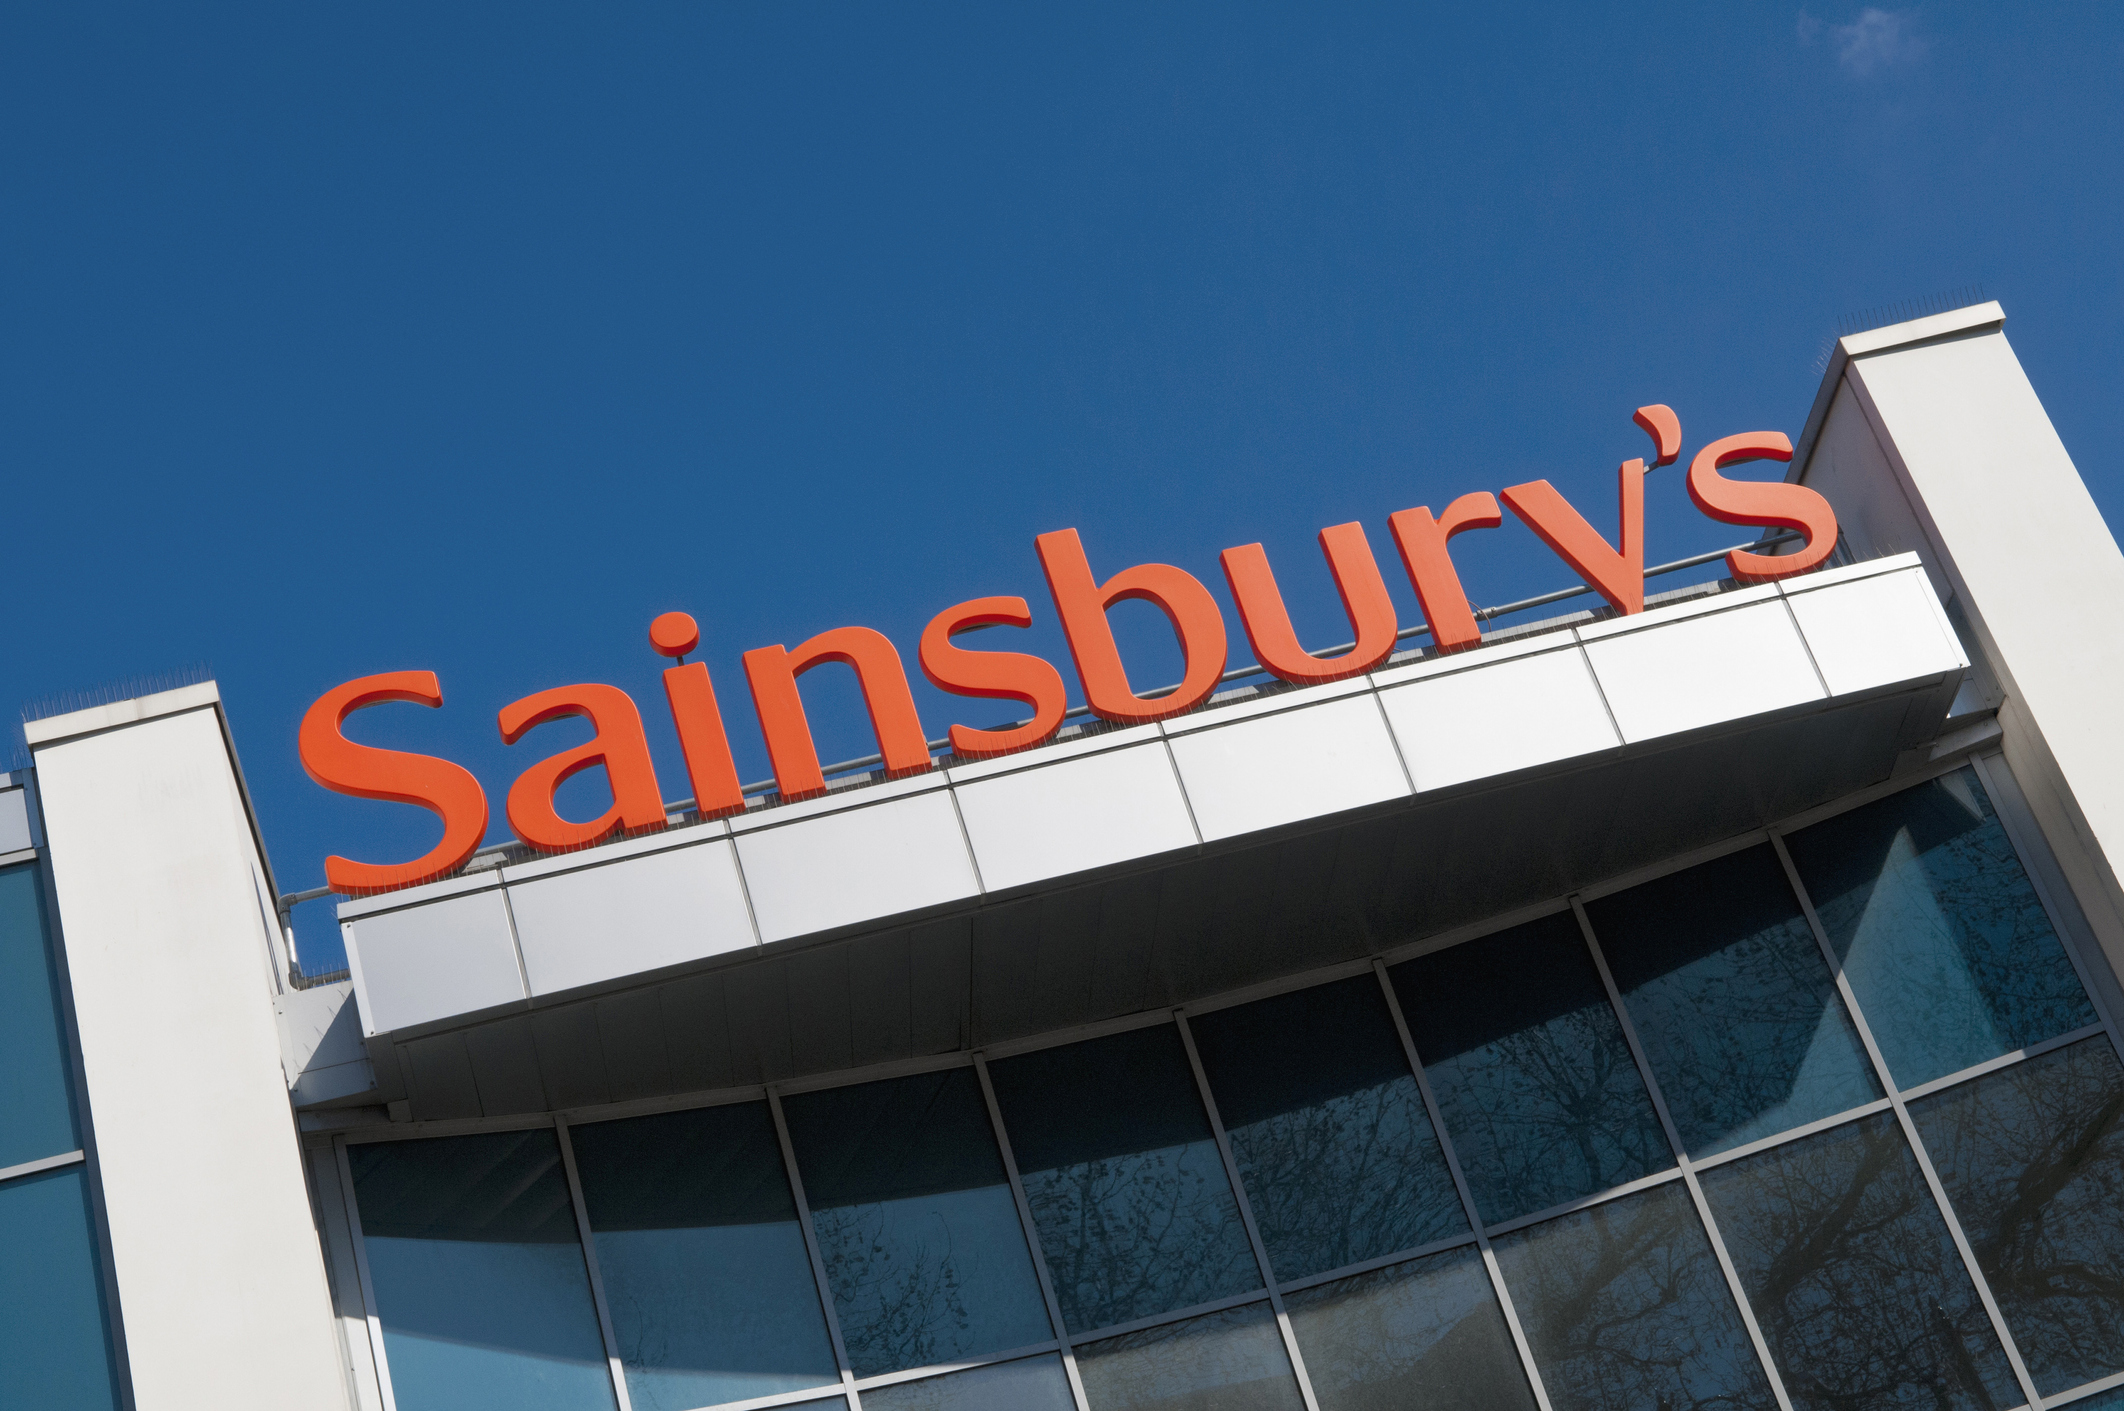 Sainsbury's opening times for Good Friday, Easter Sunday and Easter Monday 2019